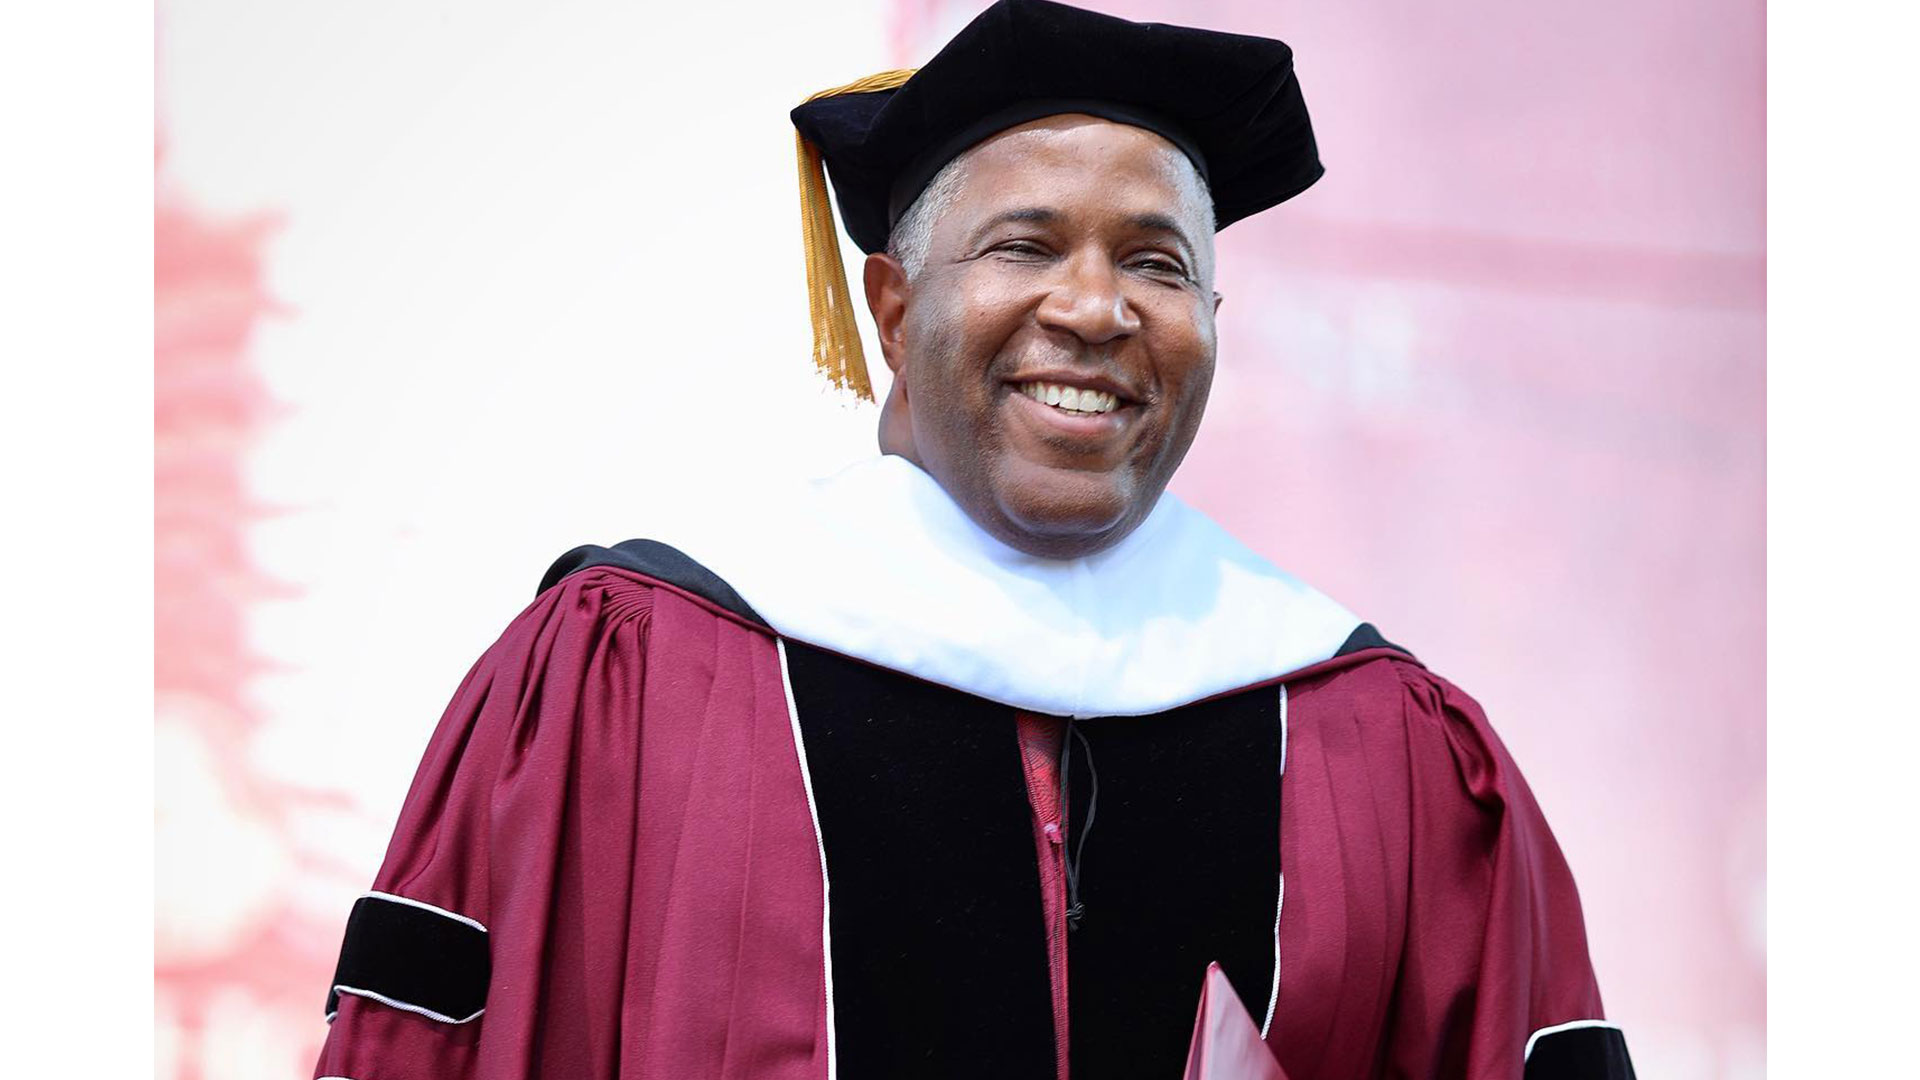 Robert Smith Morehouse Commencement